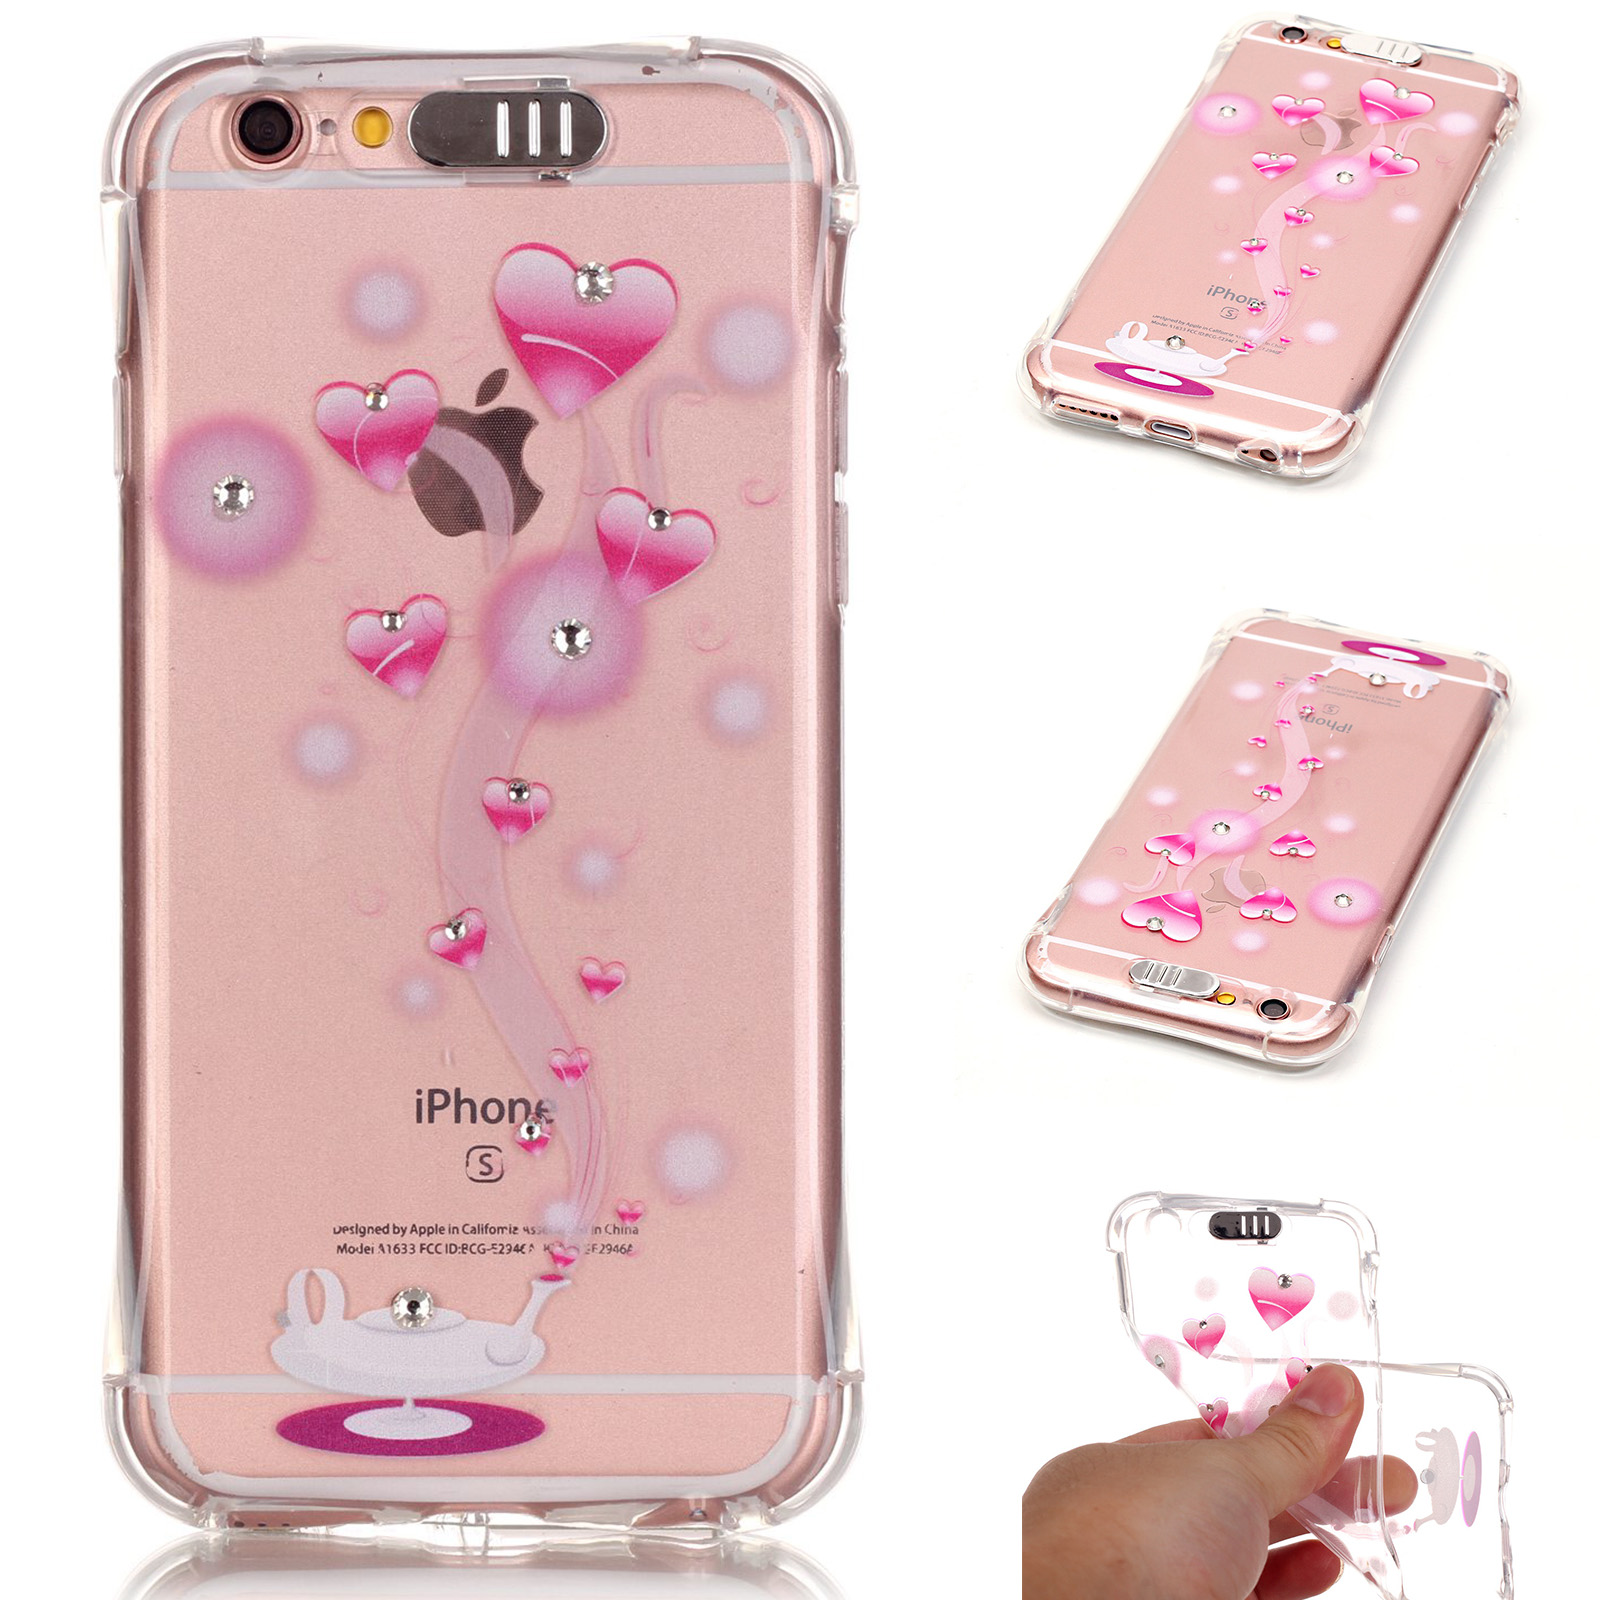 led flash lighting bling tpu case clear incoming call cover for iphone 6 6s plus ebay. Black Bedroom Furniture Sets. Home Design Ideas